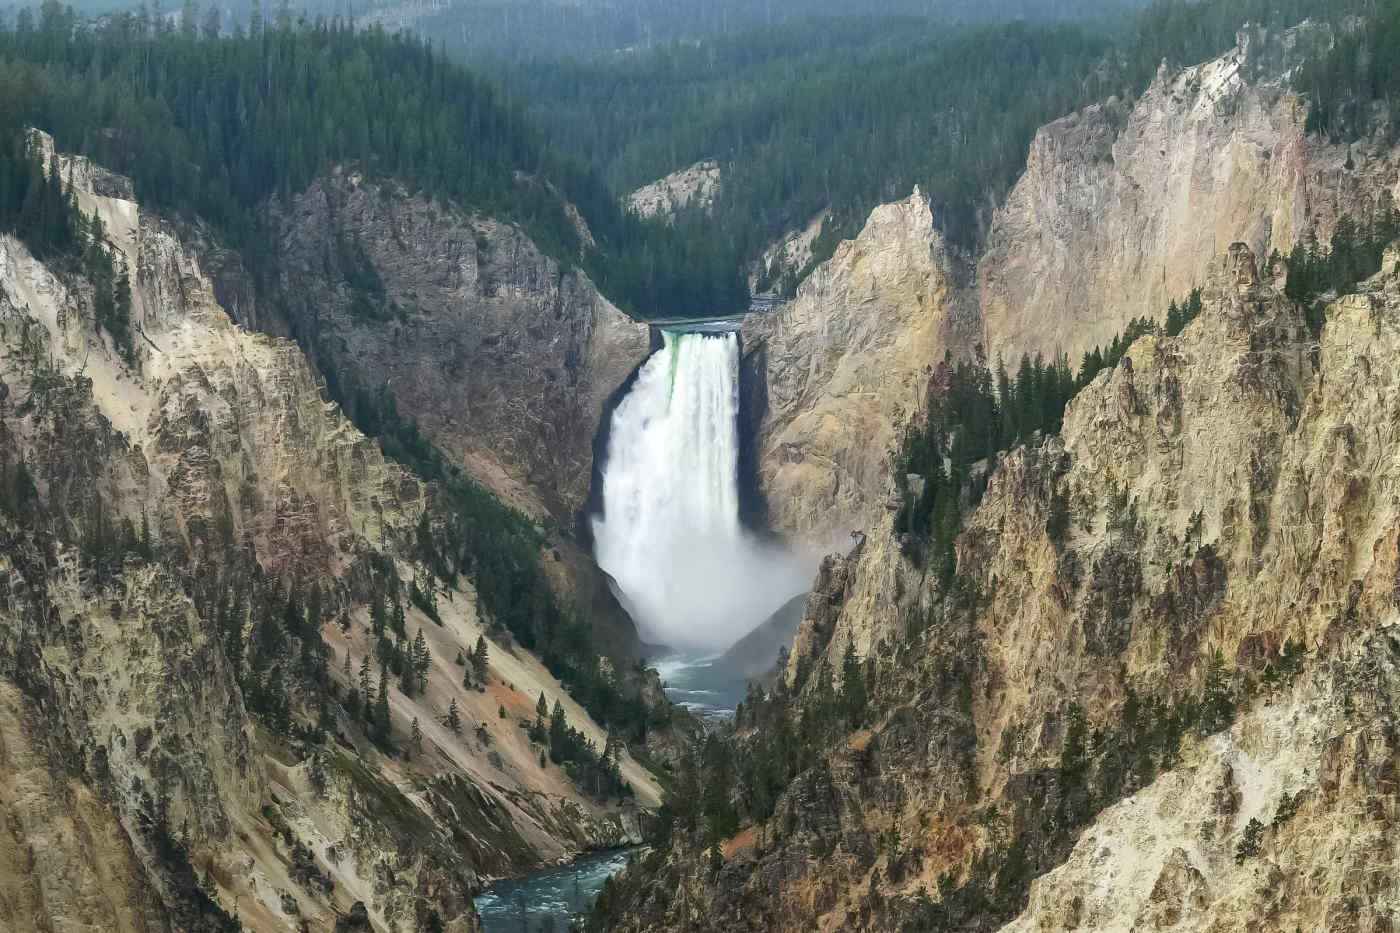 Lower Falls of Yellowstone River in Wyoming